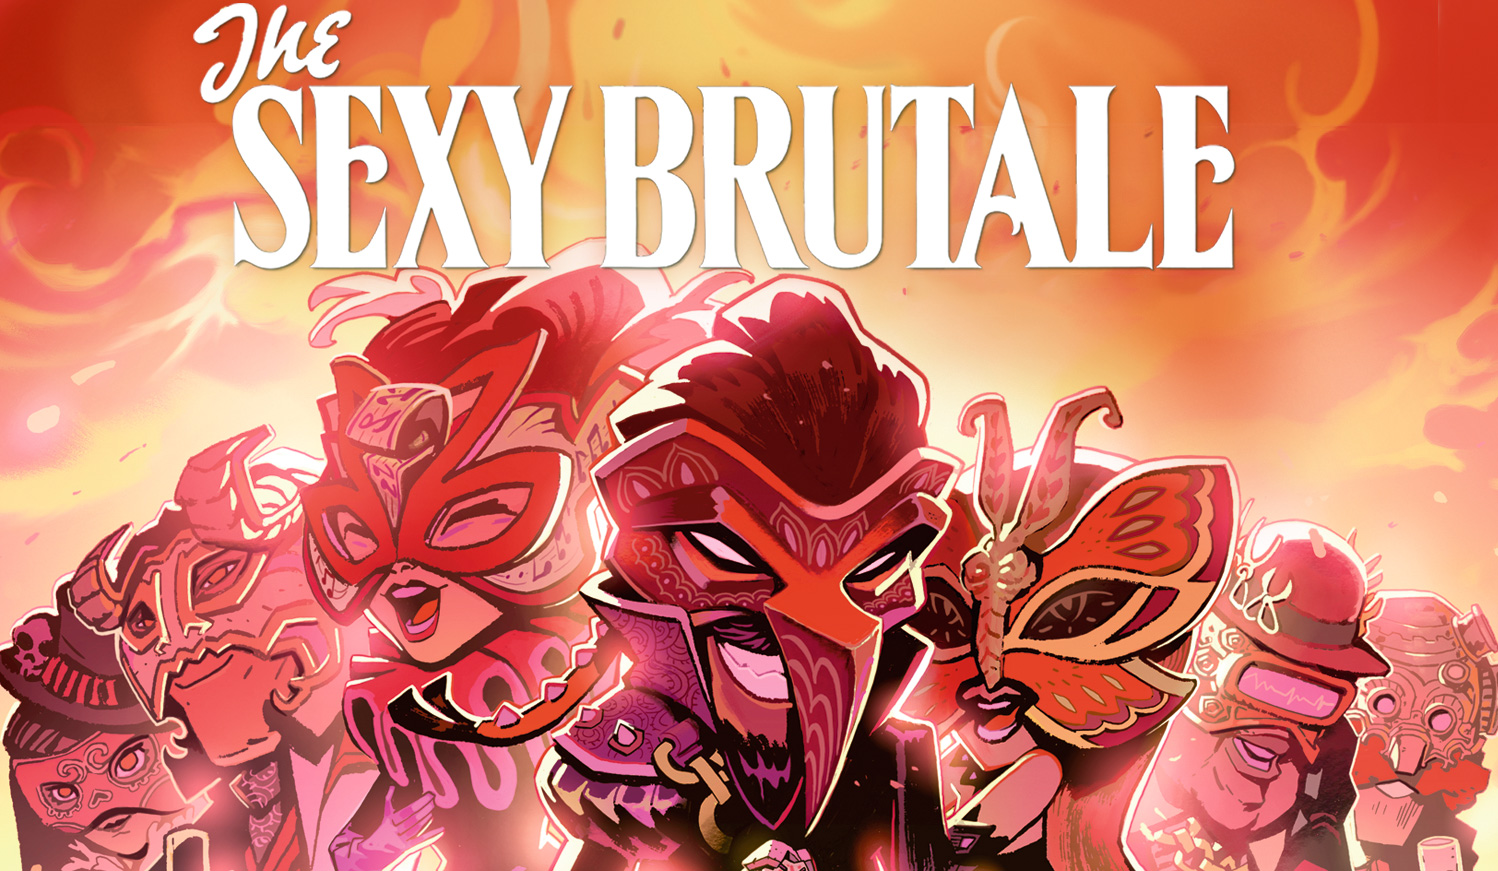 Review game Sexy Brutale detective in the best traditions of Agatha Christie